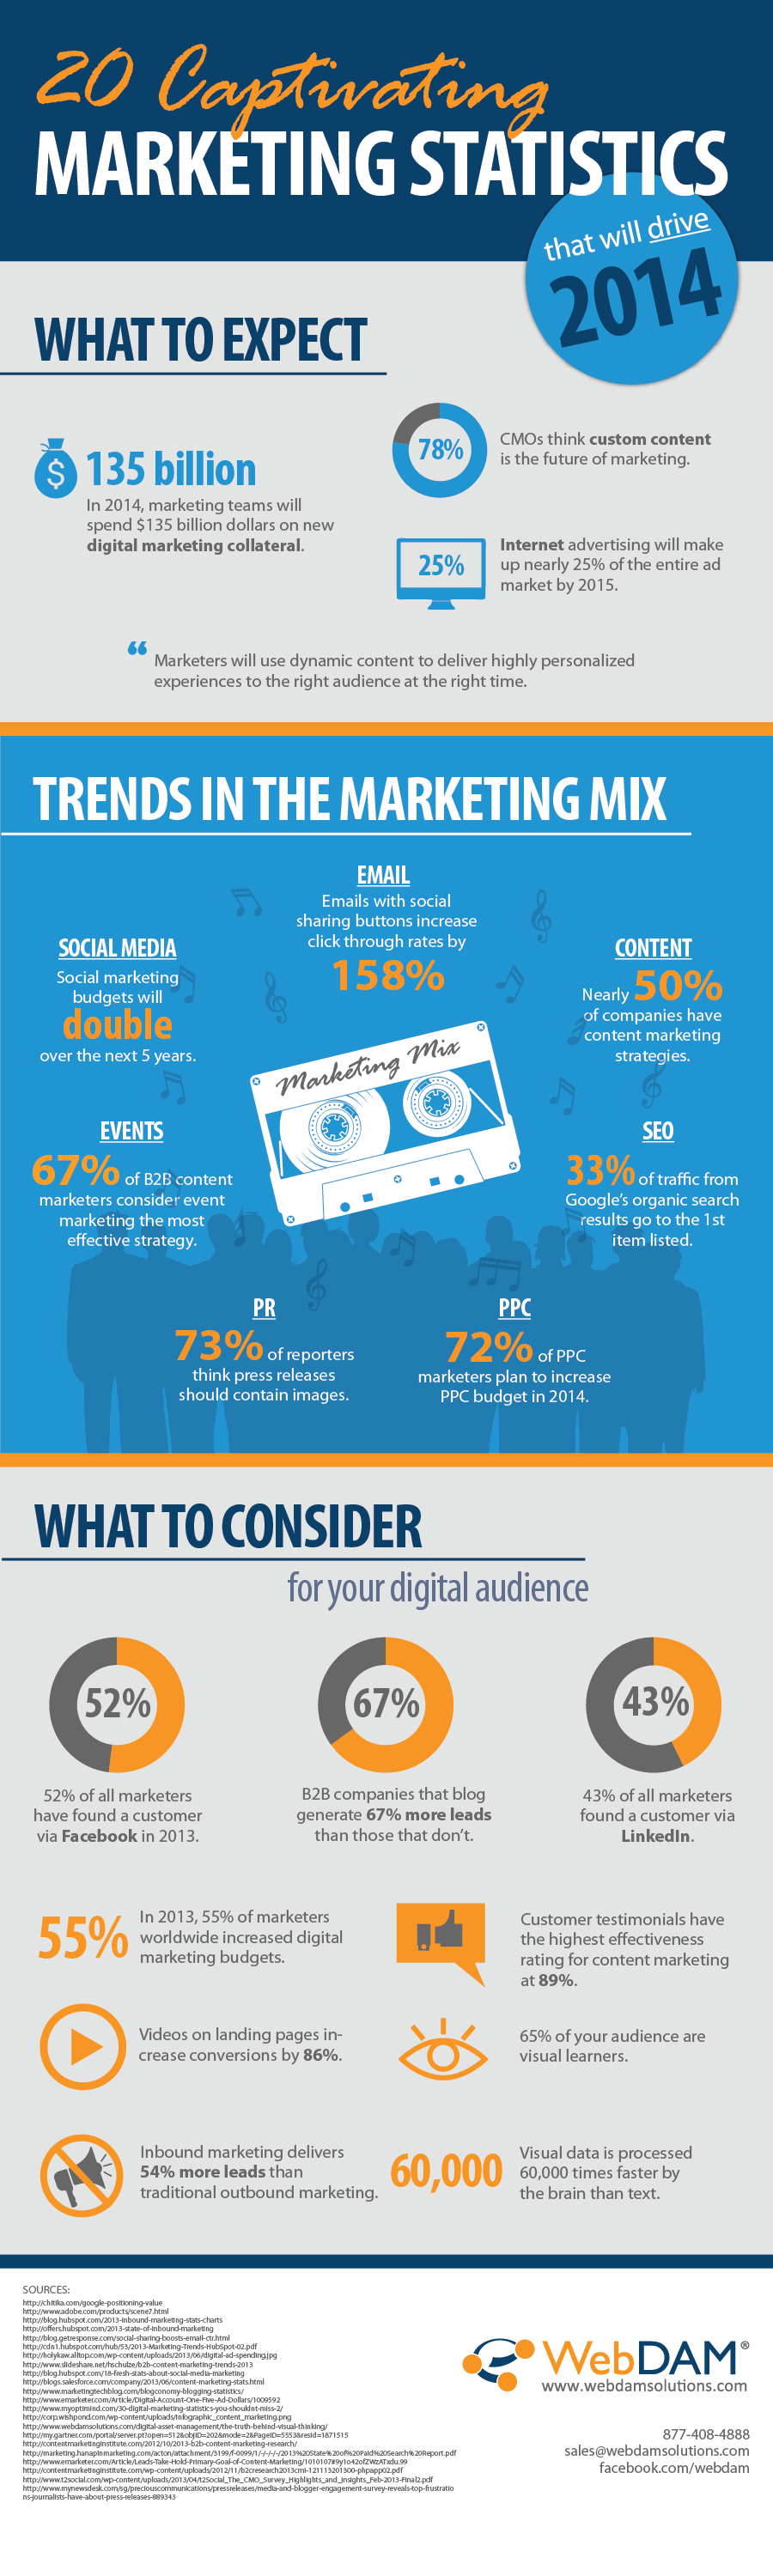 #Infographic: 20 Captivating Marketing Statistics + Marketing Mix Trends 2014